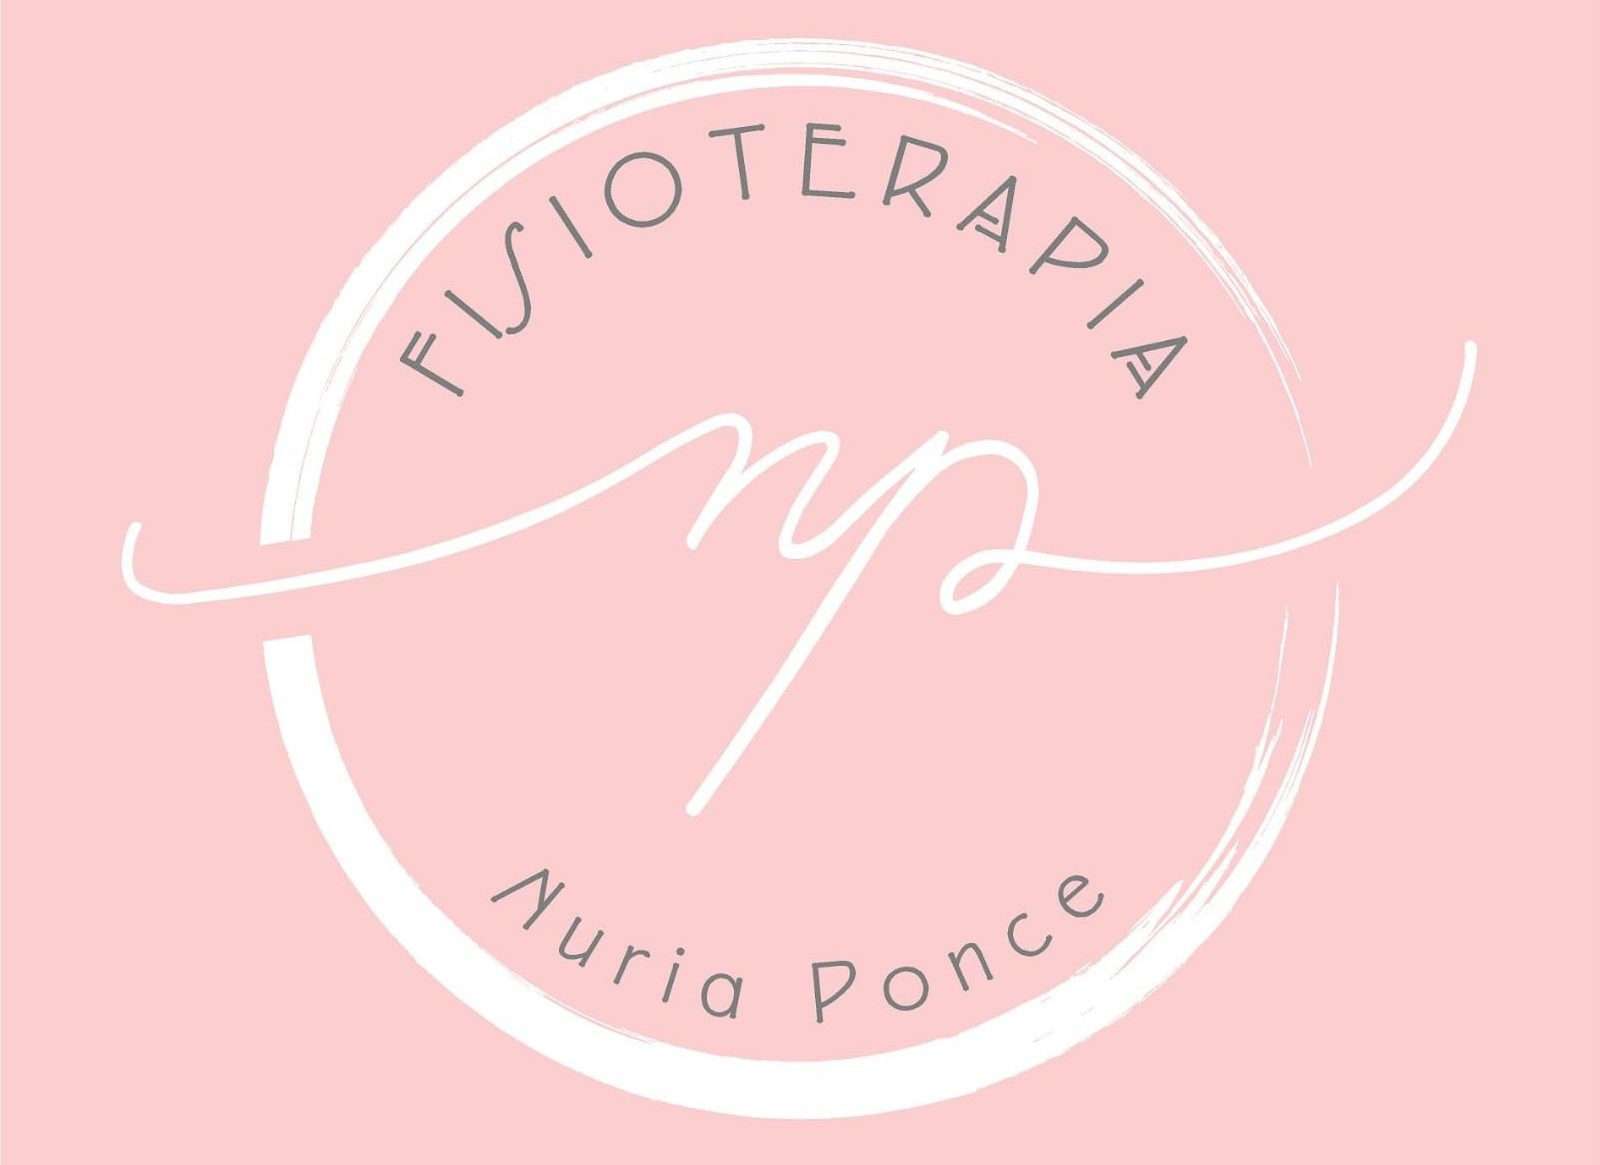 Fisioterapia Nuria Ponce